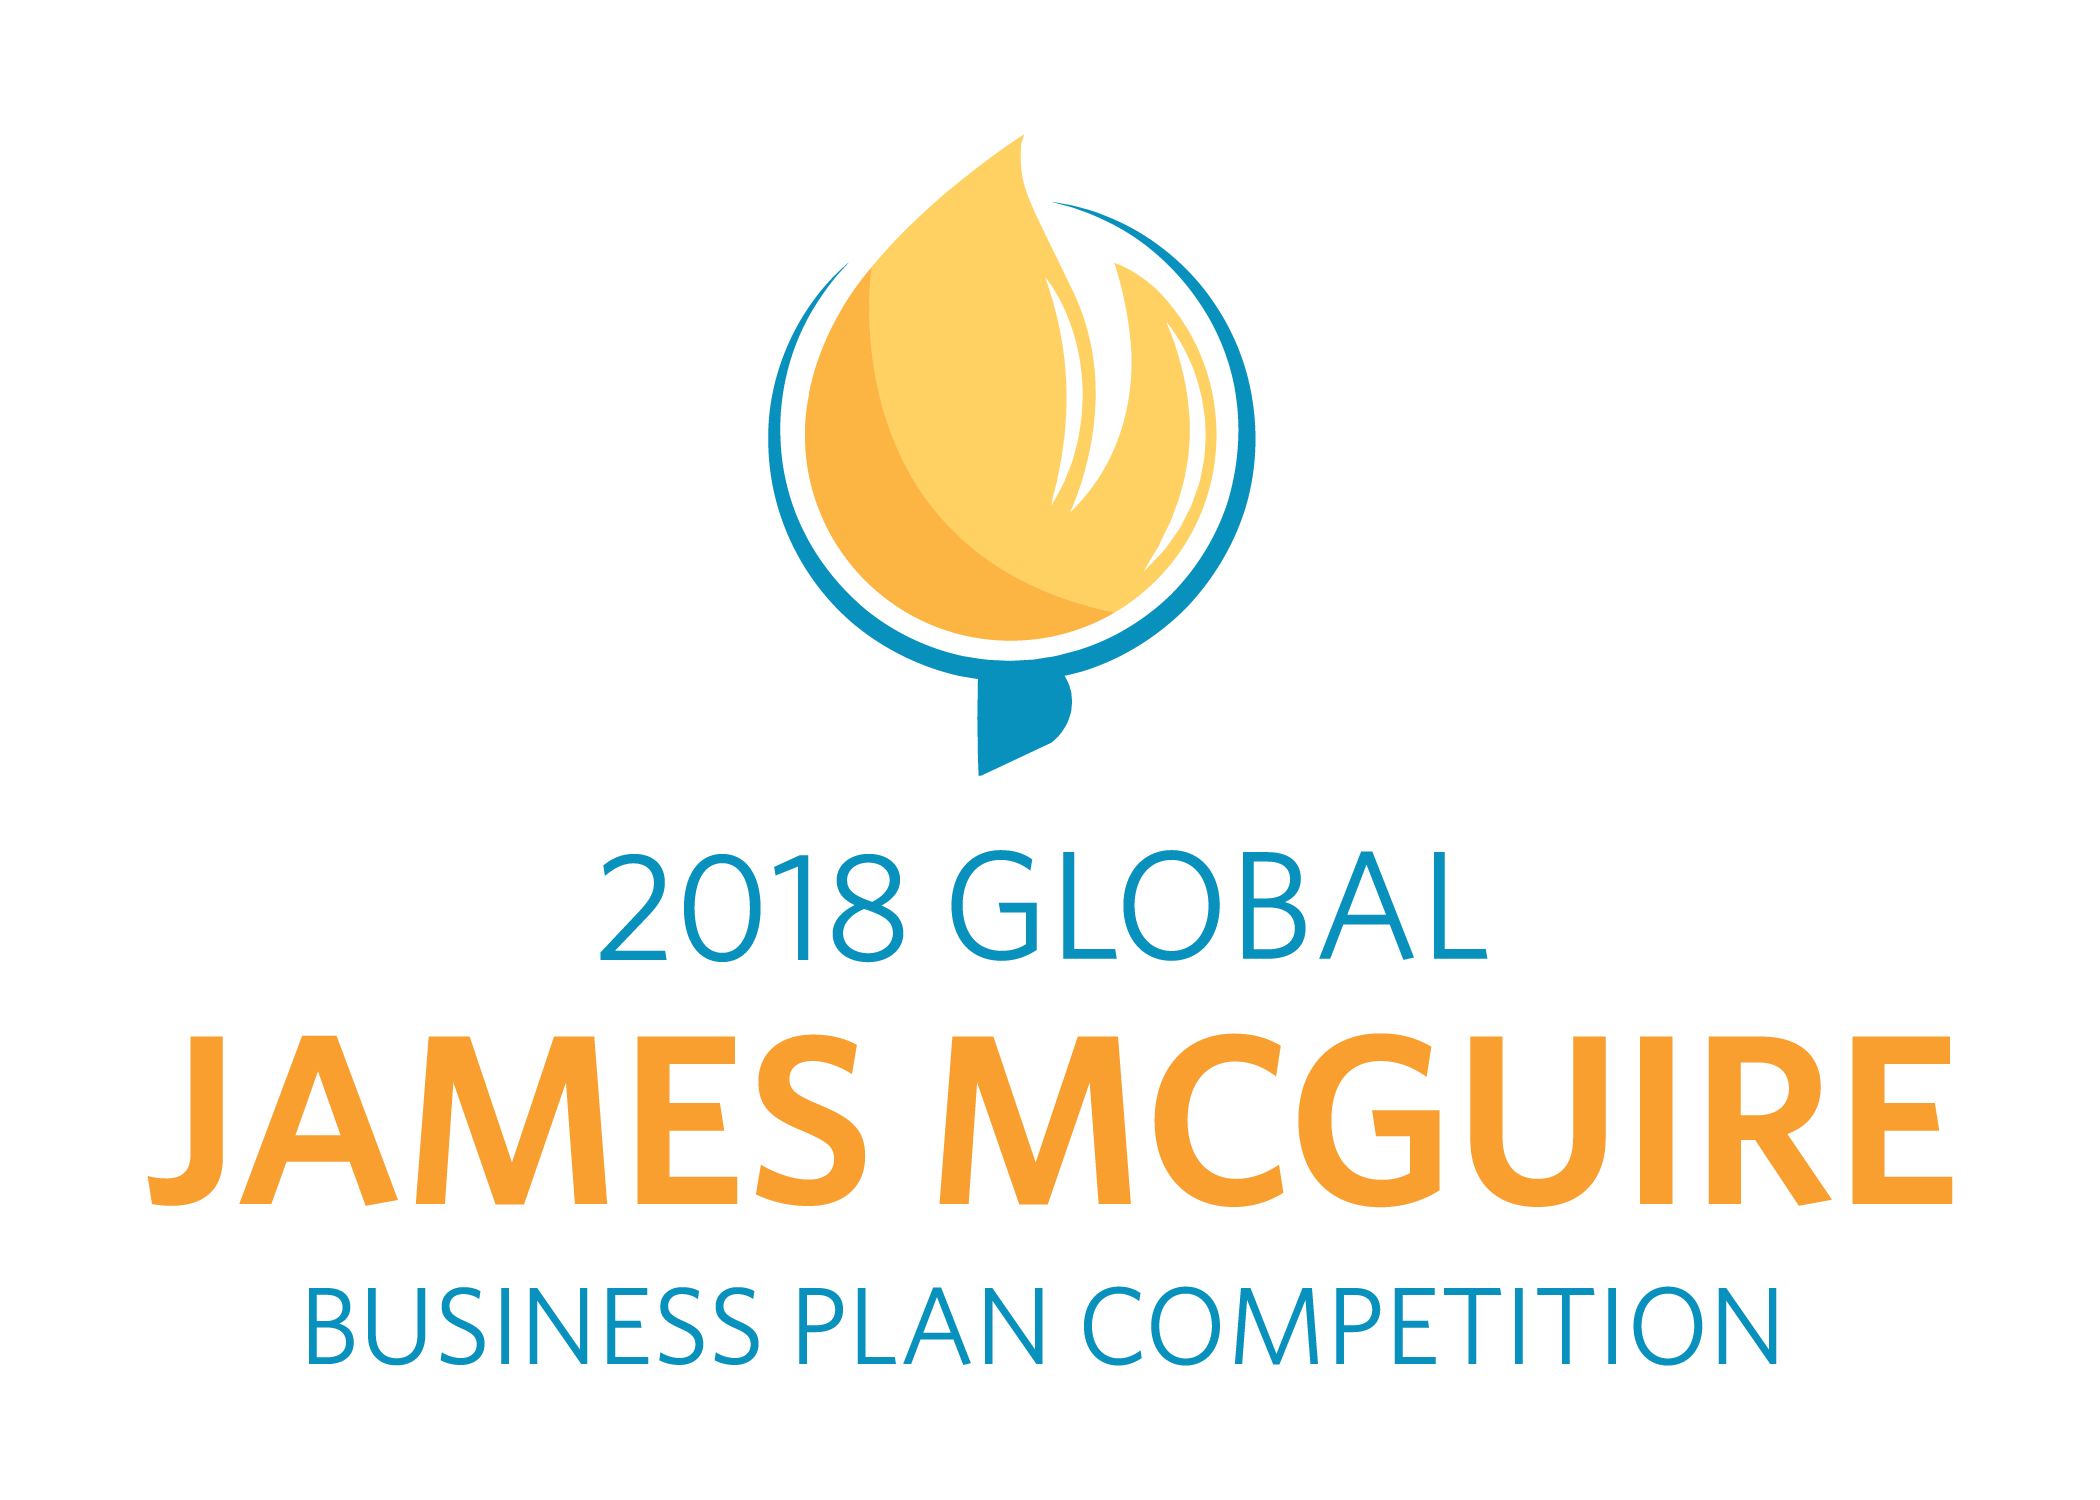 2018-james-mcguire-logo-transparency